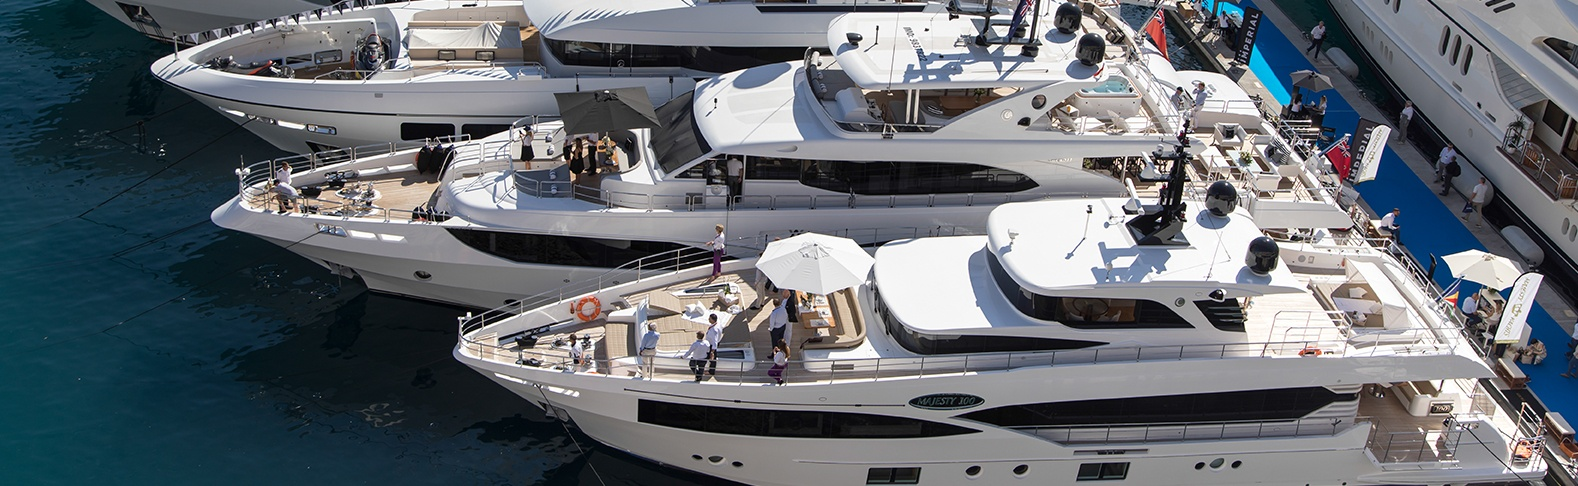 Gulf-Craft,-Monaco-Yacht-Show-2018,-Majesty-Yachts